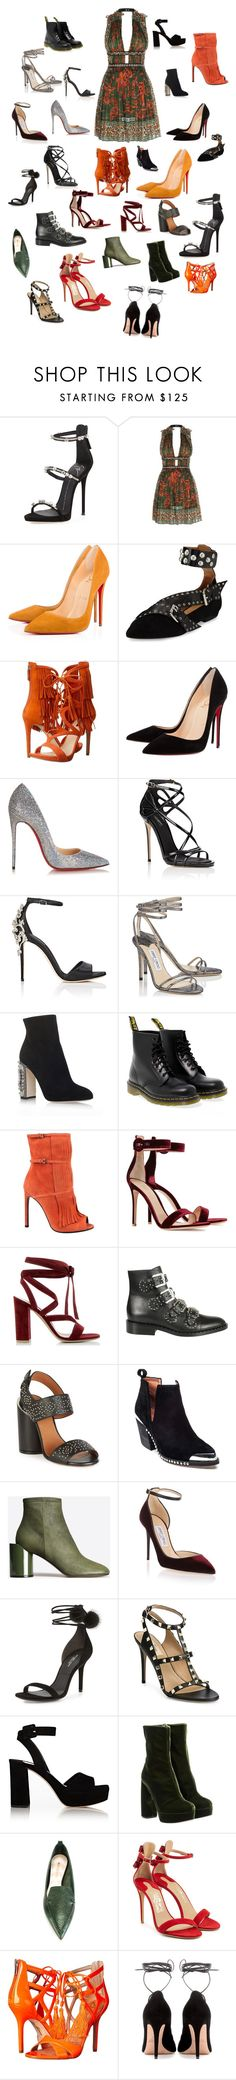 """What to chose?"" by nicolinewinding ❤ liked on Polyvore featuring Giuseppe Zanotti, Valentino, Isabel Marant, GUESS, Christian Louboutin, Dolce&Gabbana, Jimmy Choo, Dr. Martens, Gucci and Gianvito Rossi"